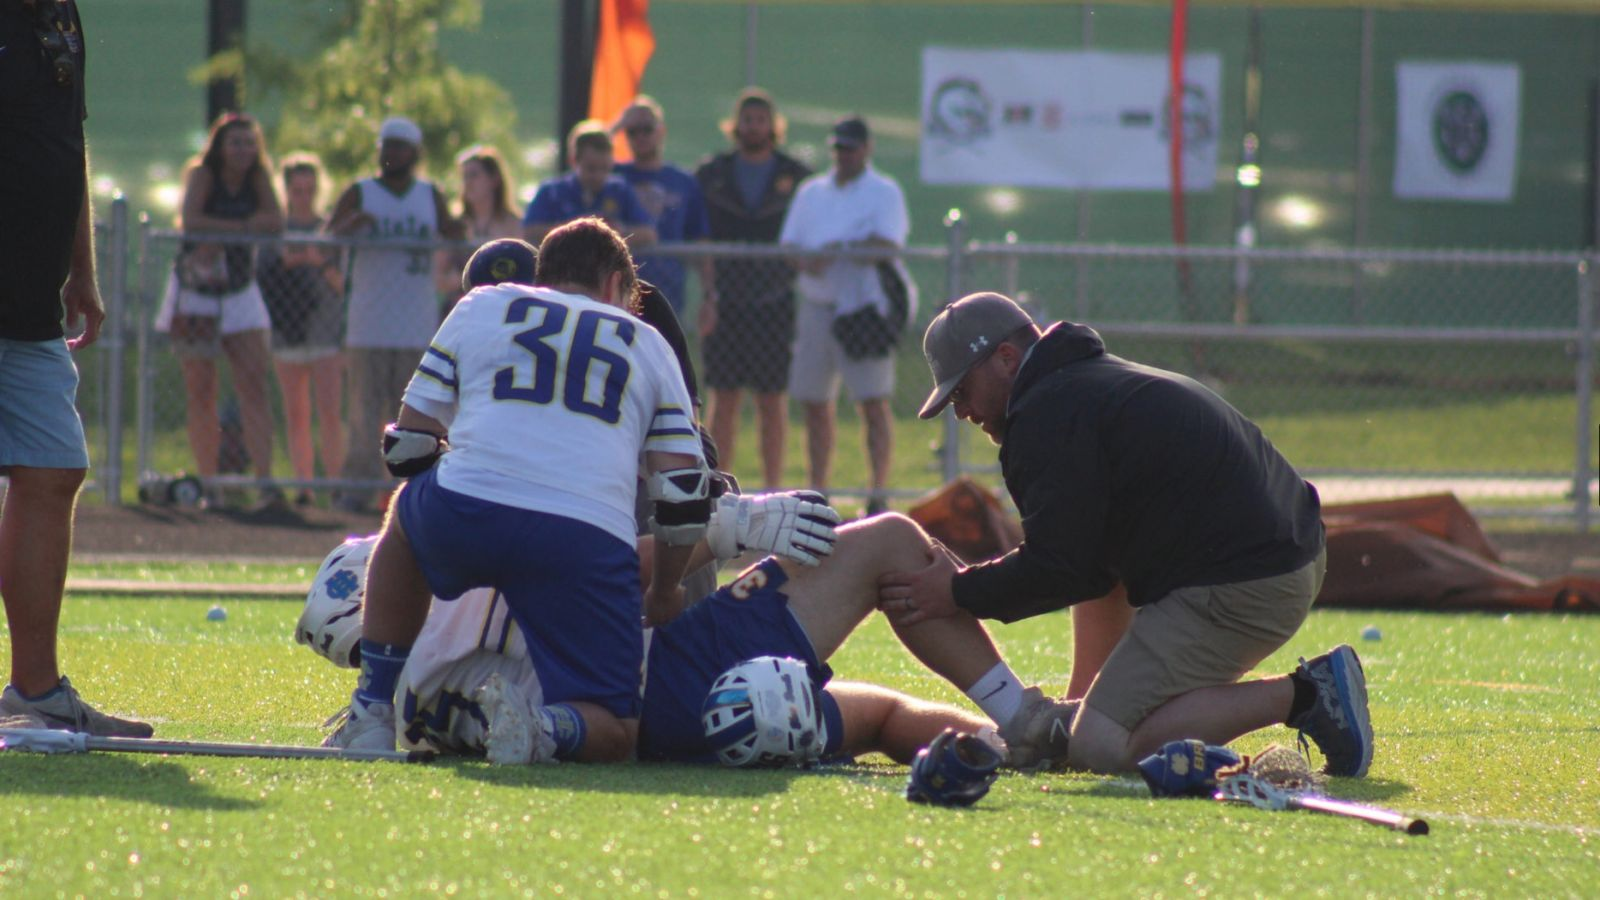 an athletic trainer helping an injured player on a field